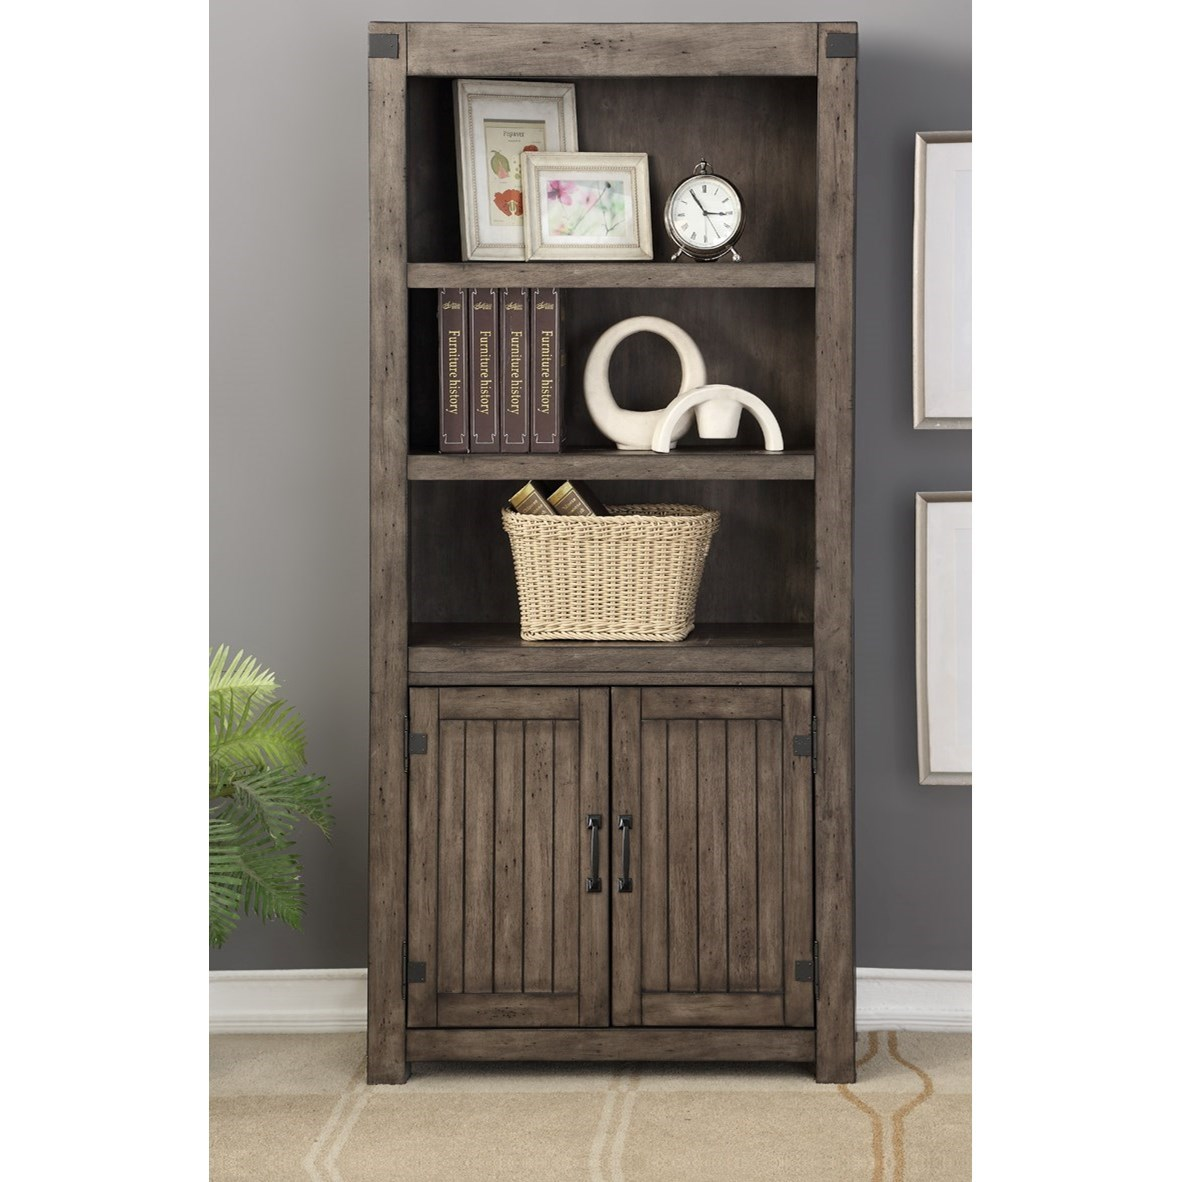 Legends furniture storehouse collection zstr 6009 for Storehouse furniture